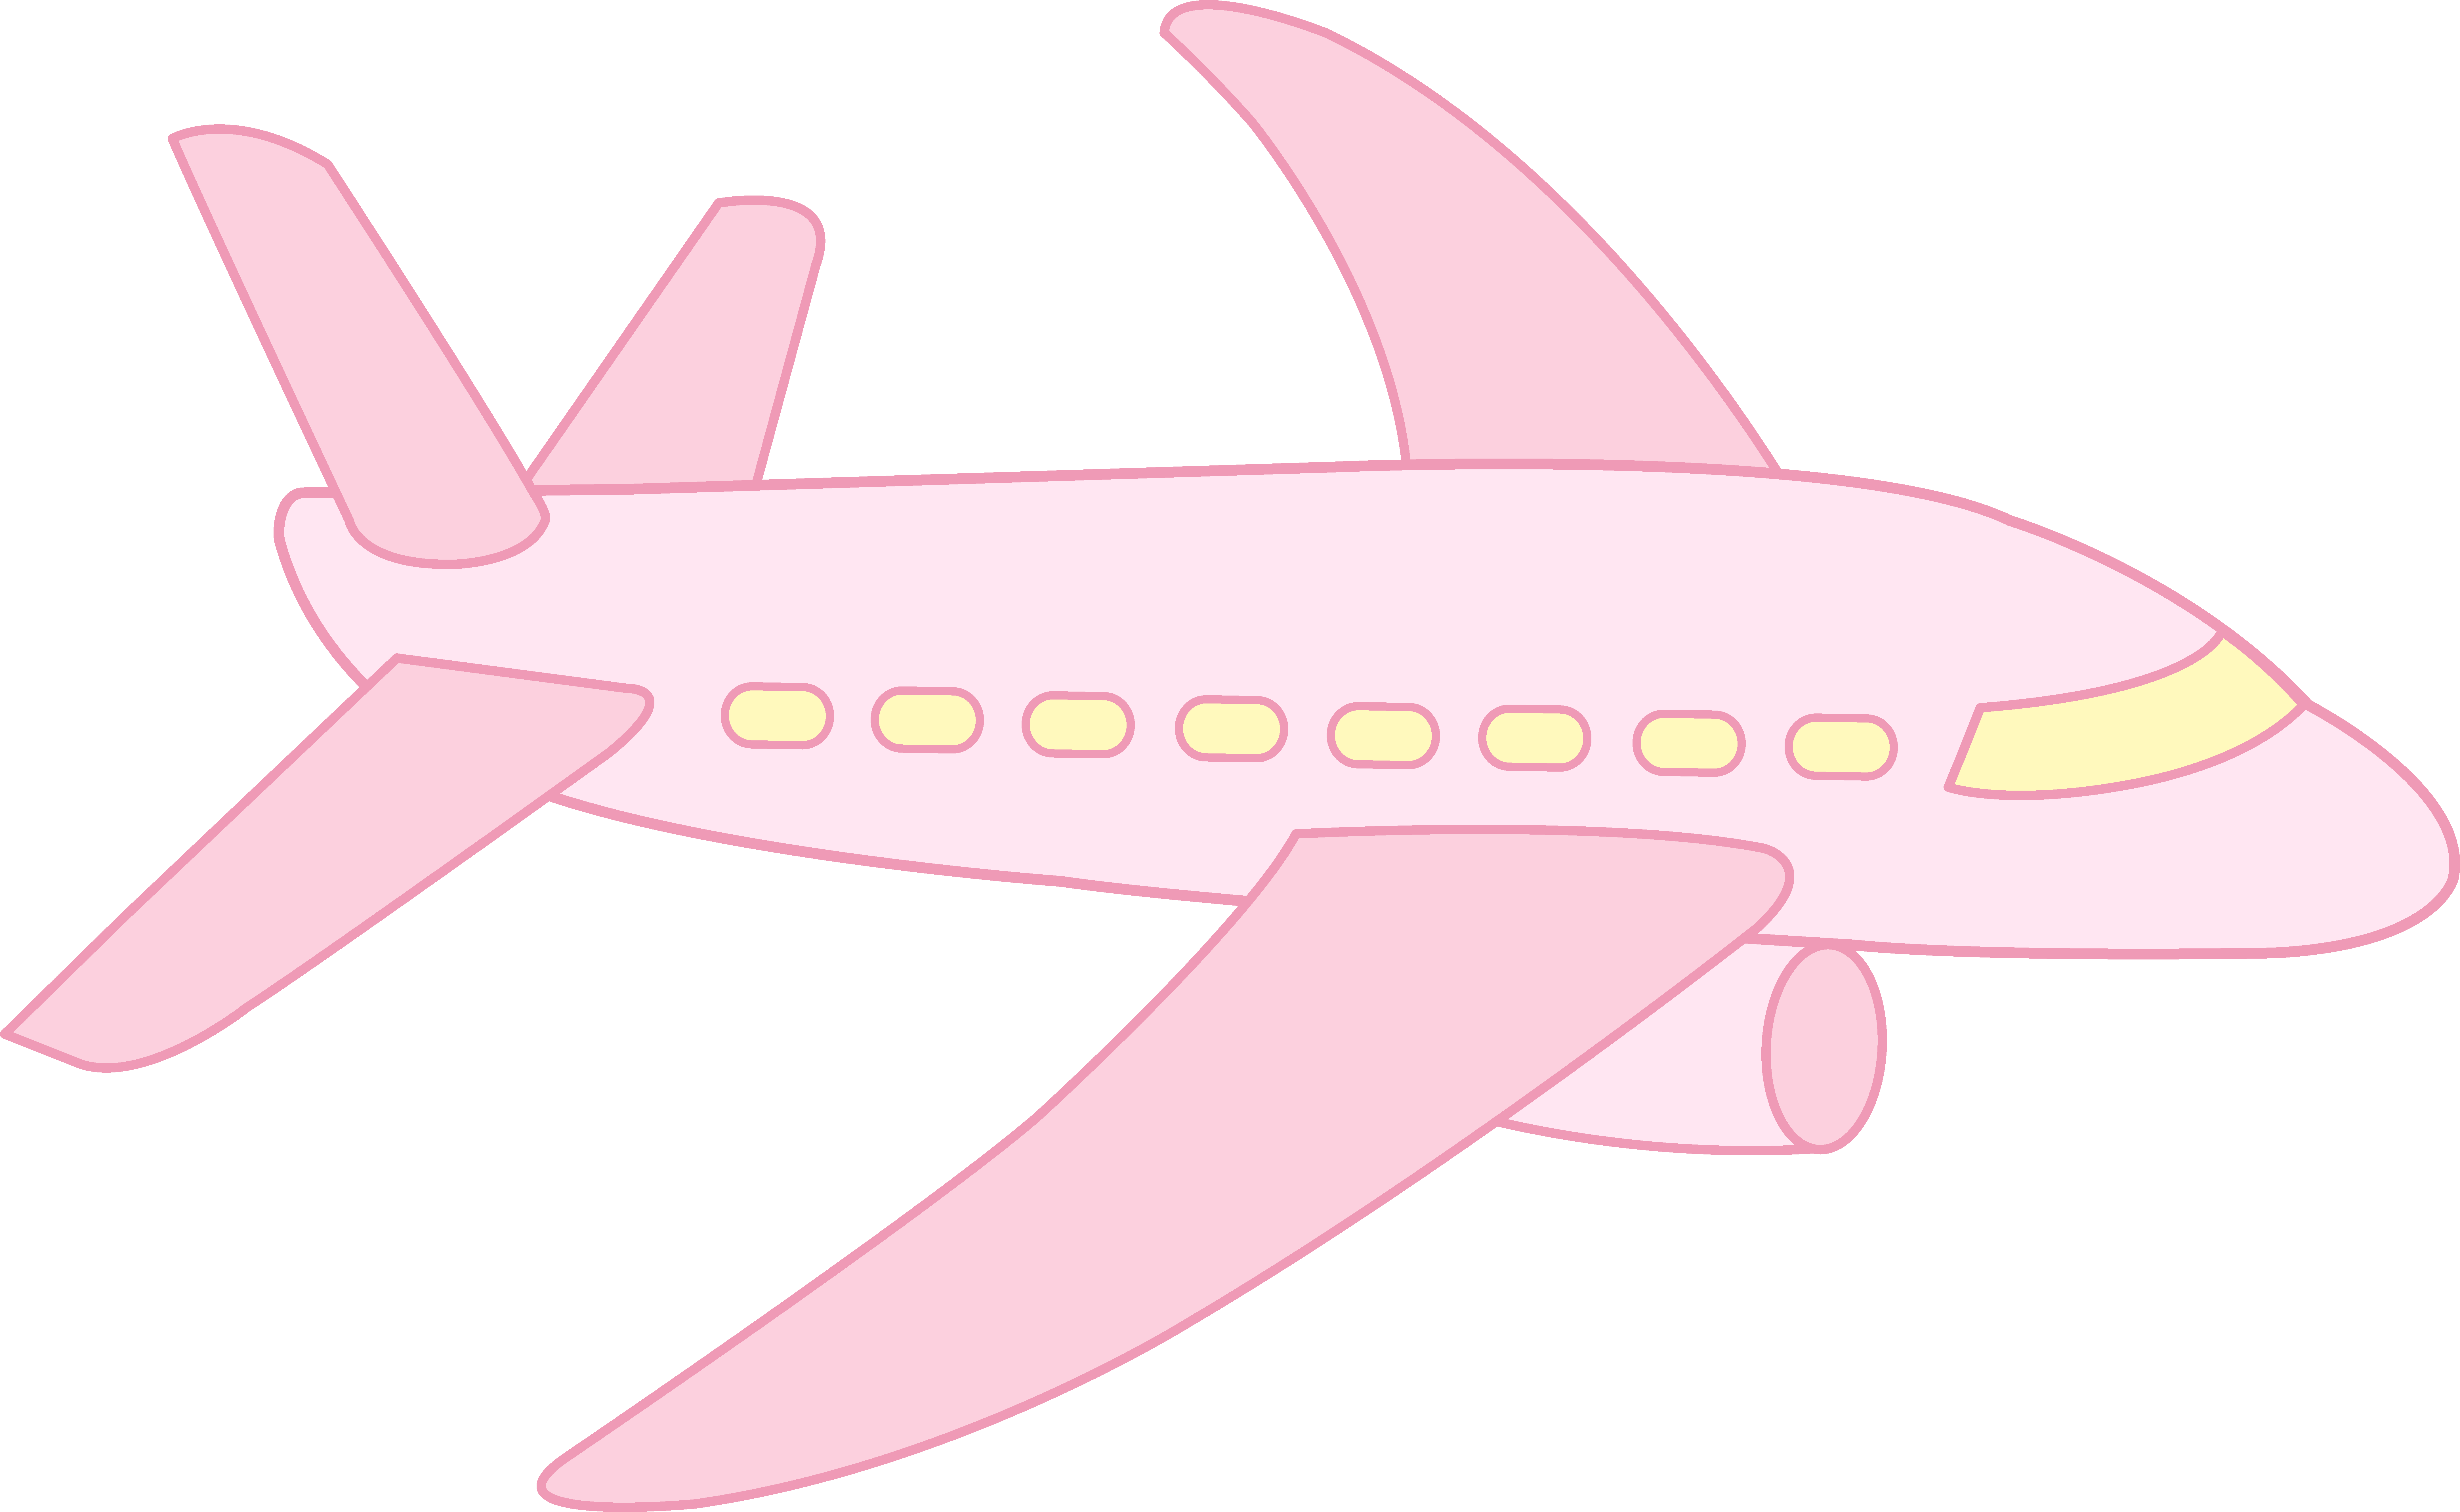 Pink plane clipart clip art free Cute Pink Airplane - Free Clip Art clip art free